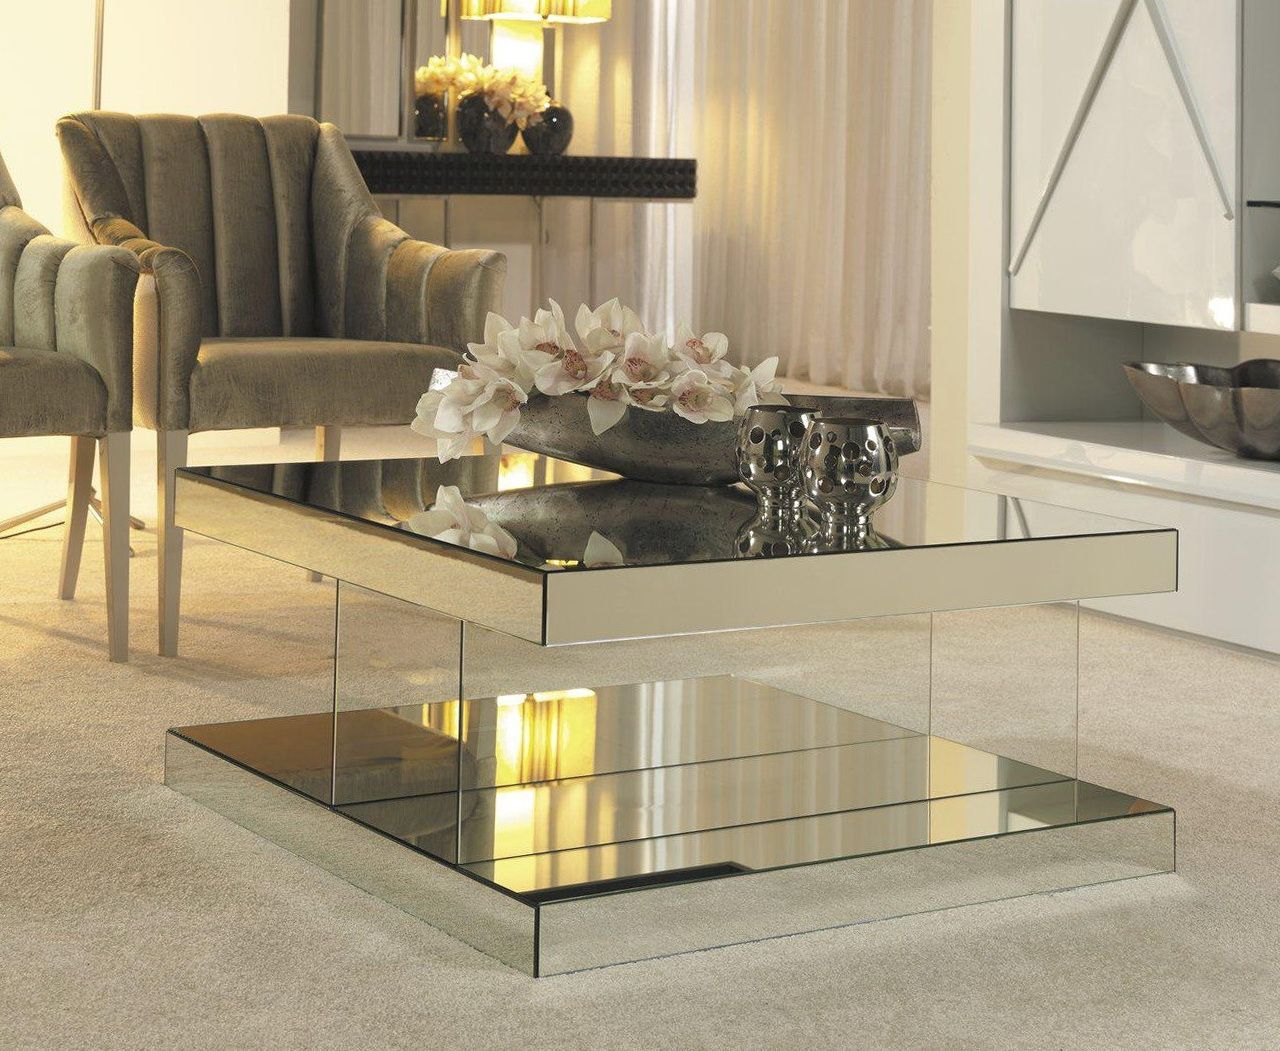 The Beautiful Reflections Of Mirrored Coffee Table Darbylanefurniture Com In 2020 Mirrored Coffee Tables Coffee Table Vintage Coffee Table